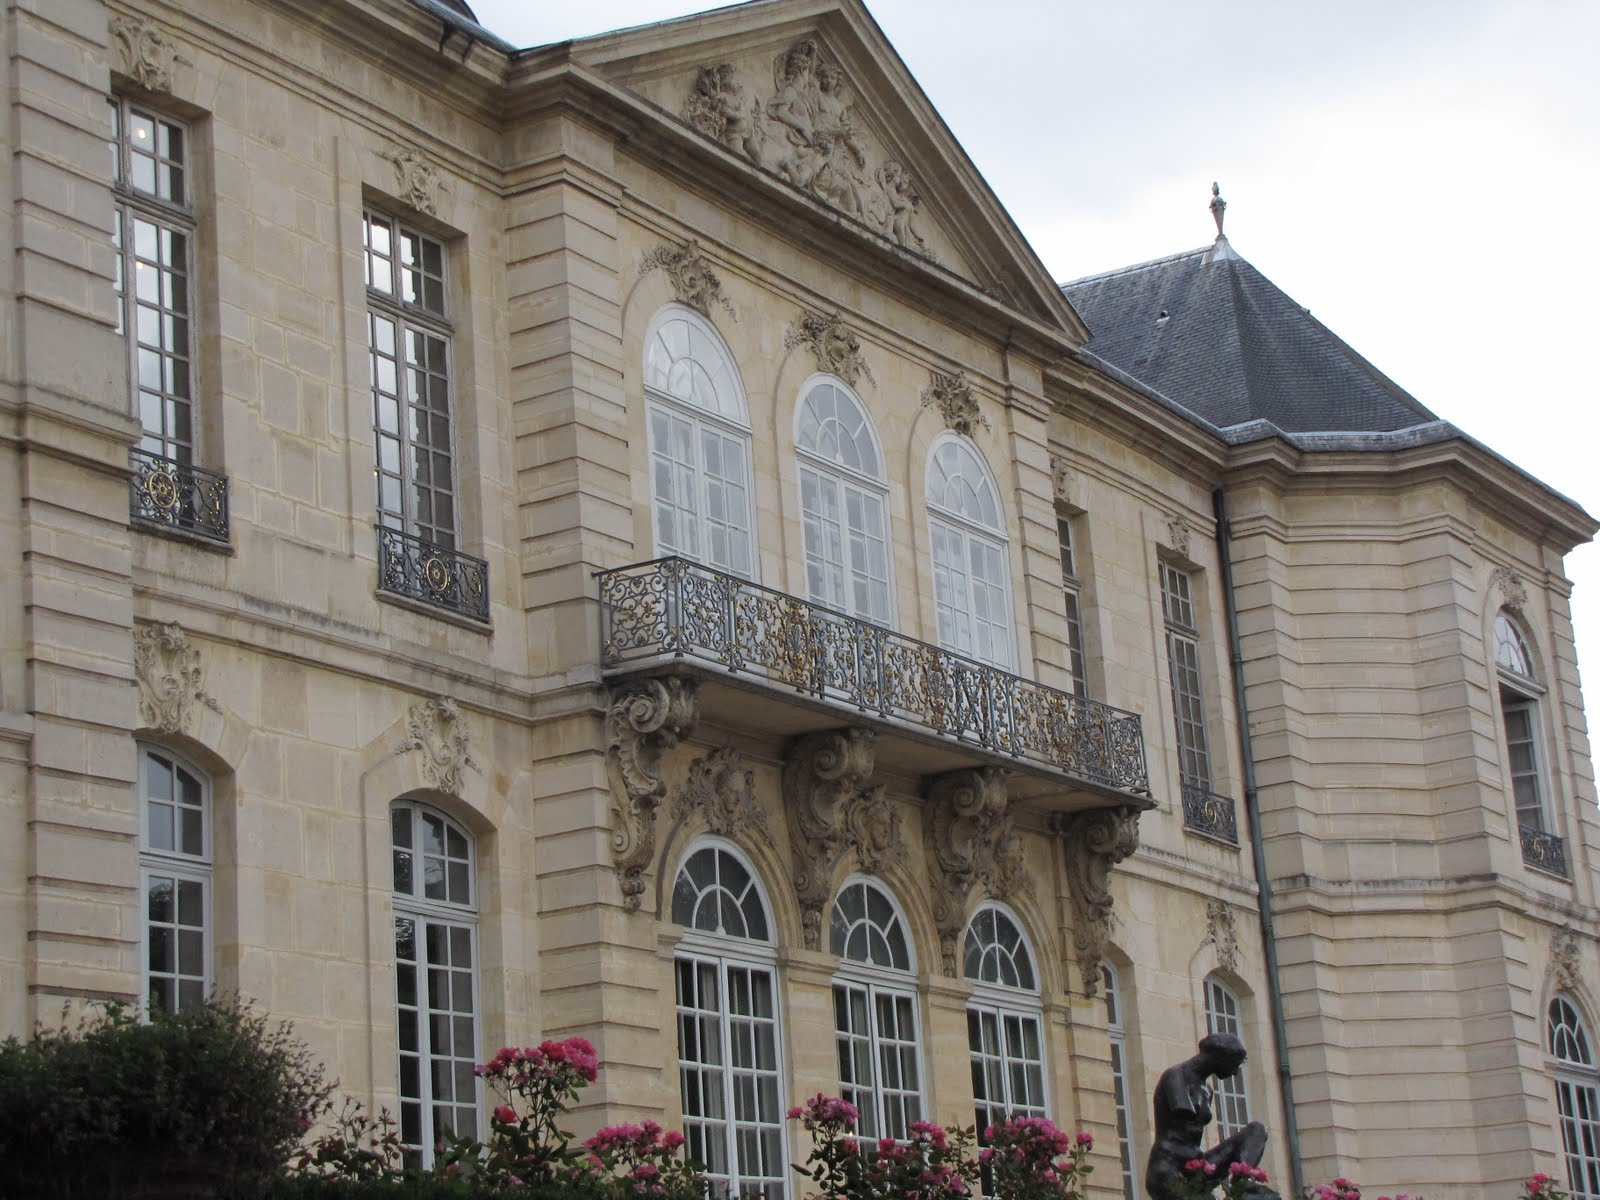 The Muse Rodin Is My Favourite Museum In Paris Not Only Work Of Auguste Absolutely Beautiful But Gardens Surrounding His Works Are Truly